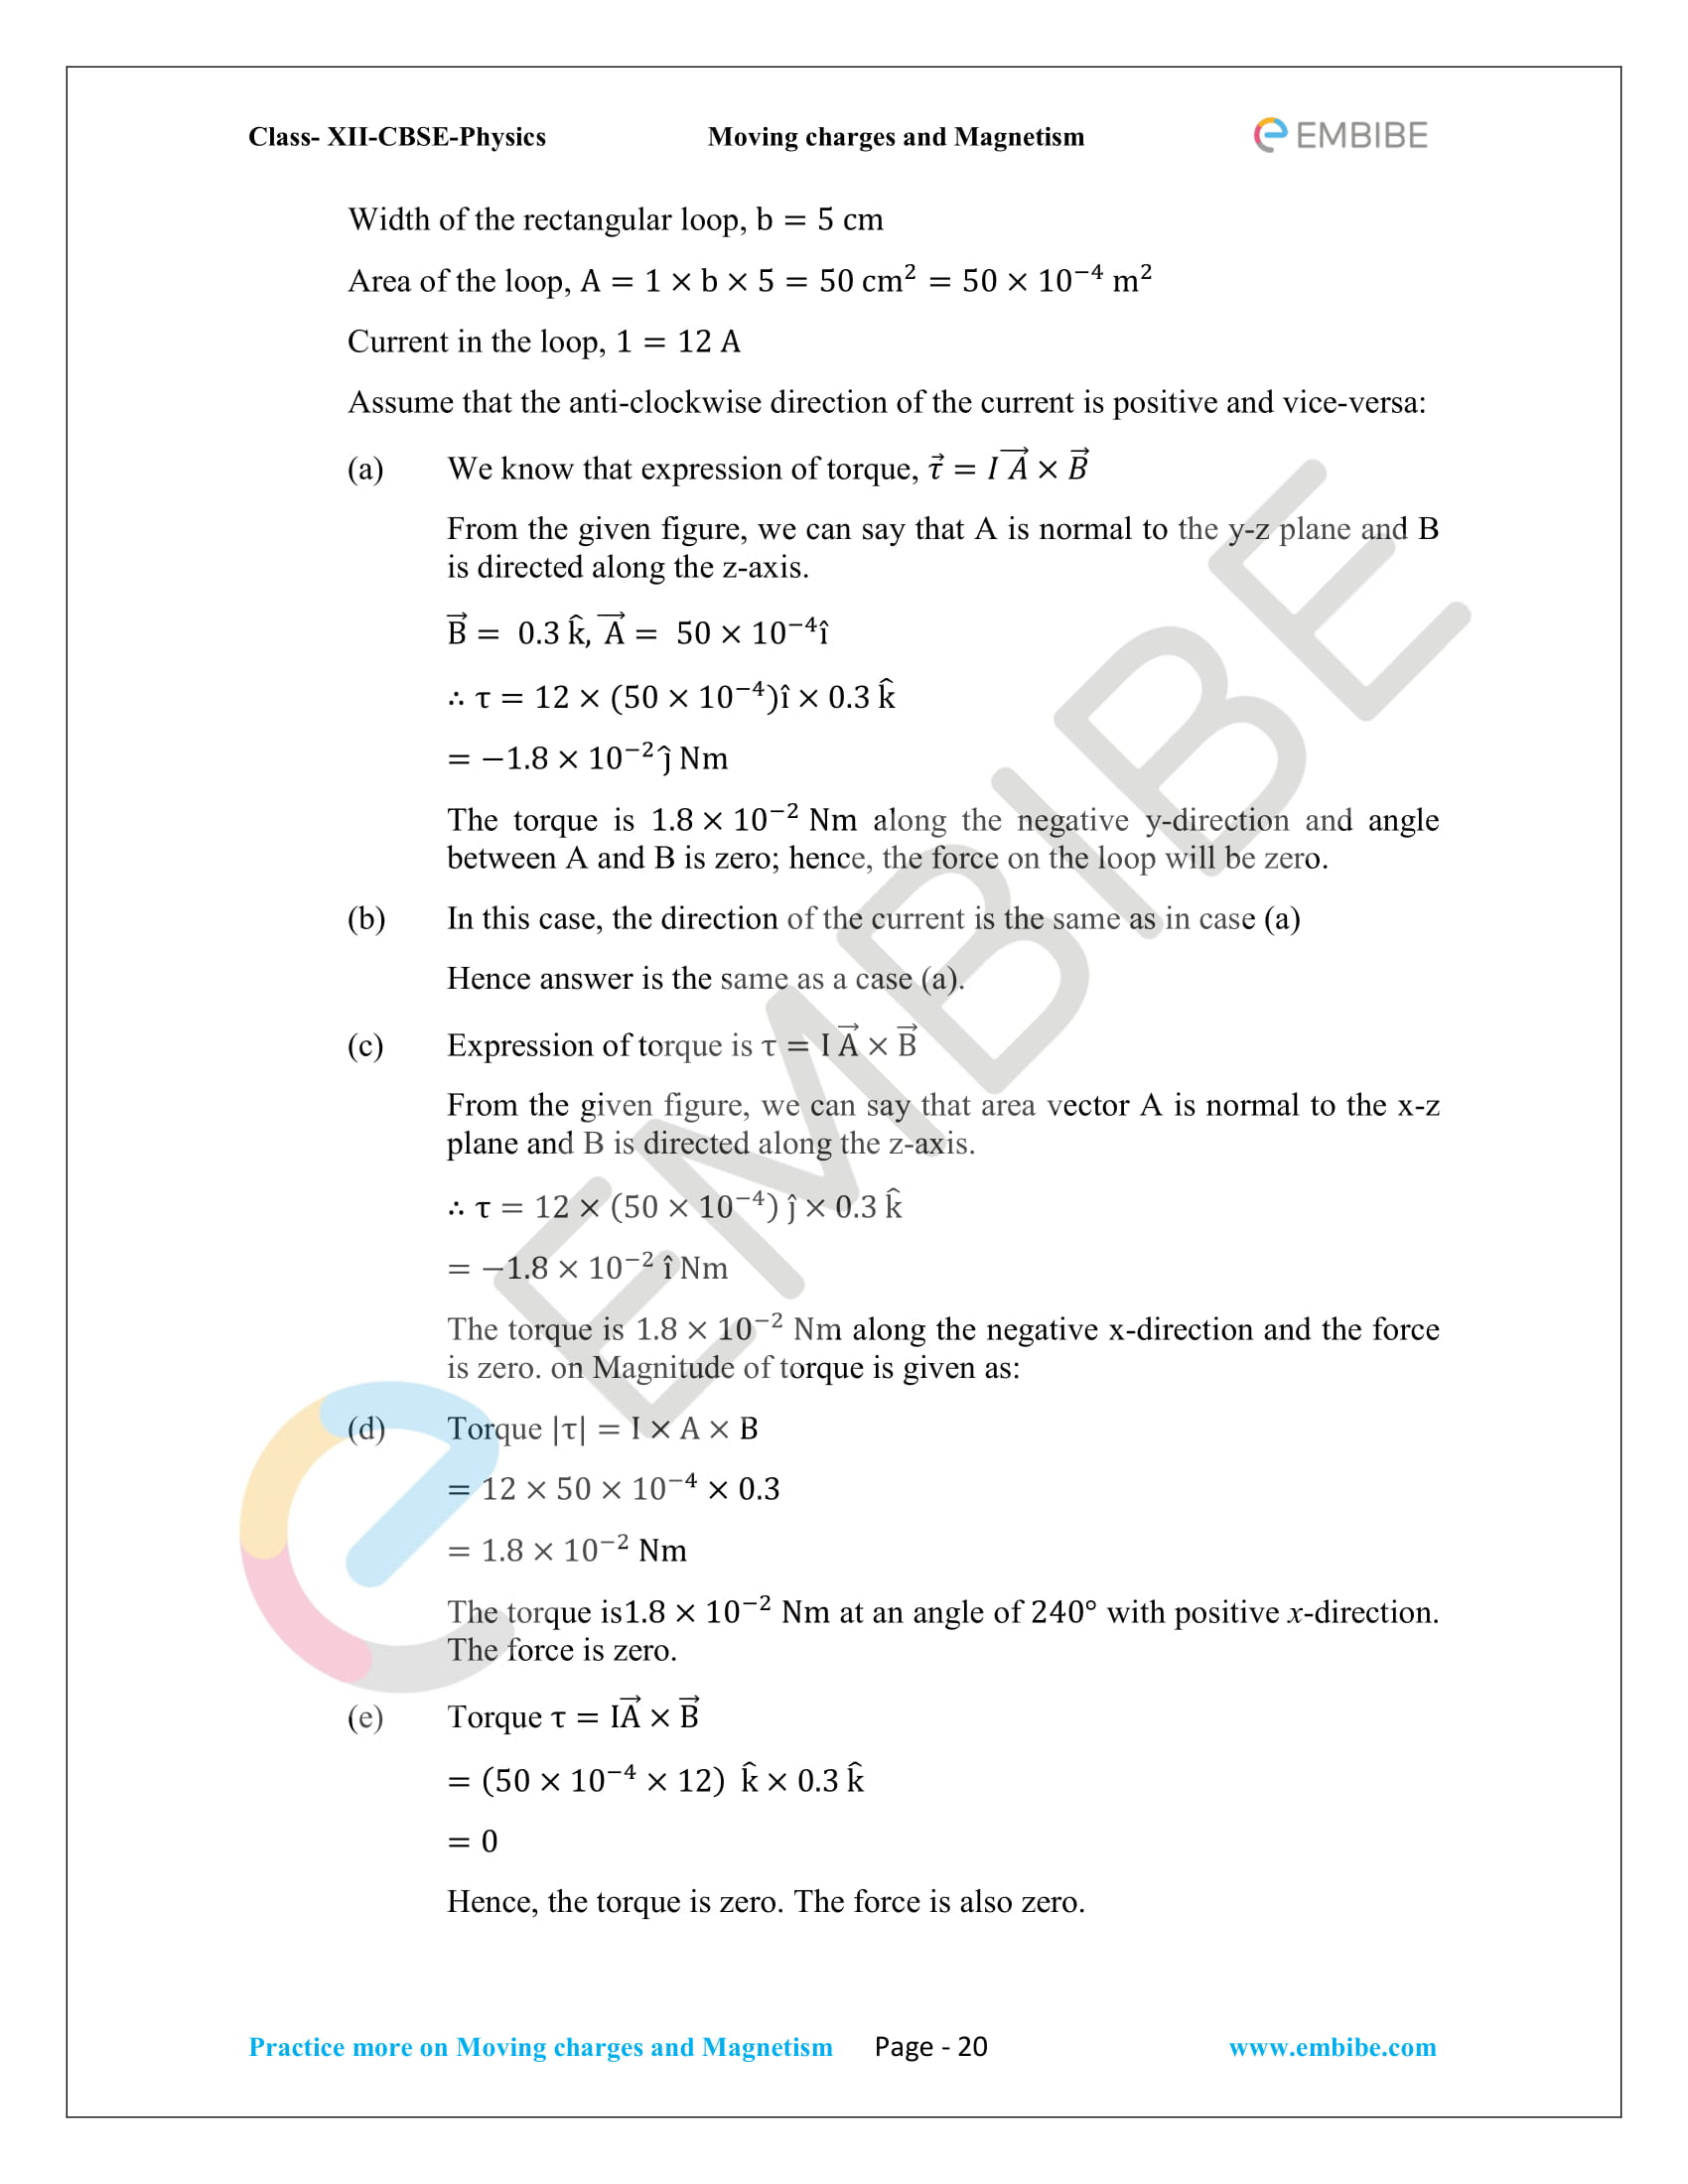 NCERT_Grade 12_Physics_Ch_04_Moving Charges and Magnetism-20